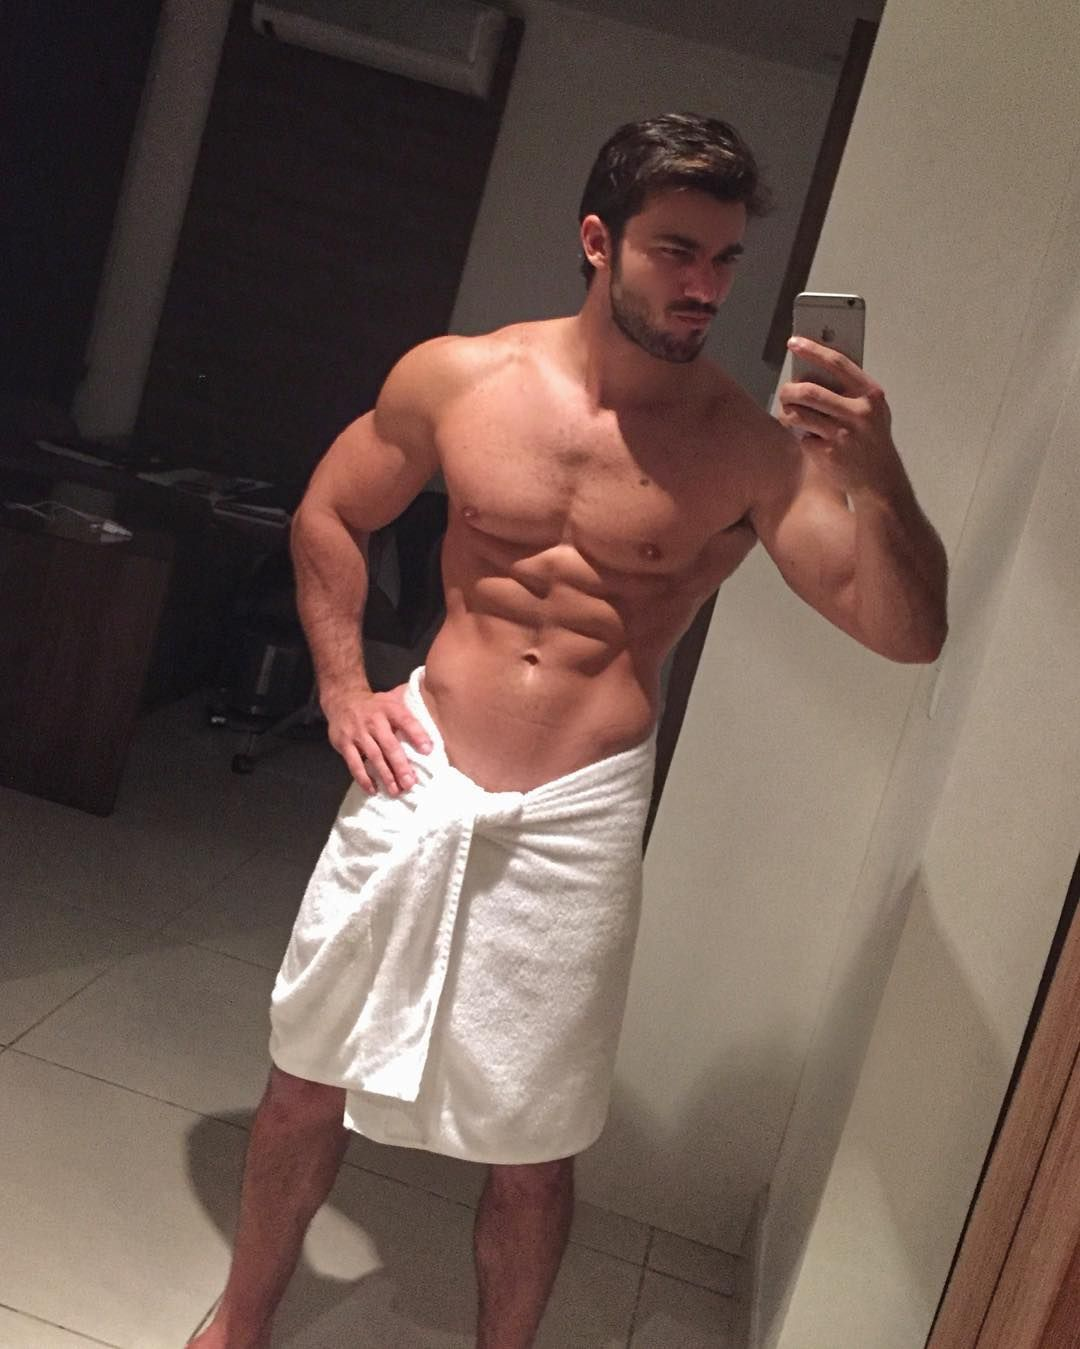 La Fitness With Towel Service: Sexy Muscle Guys